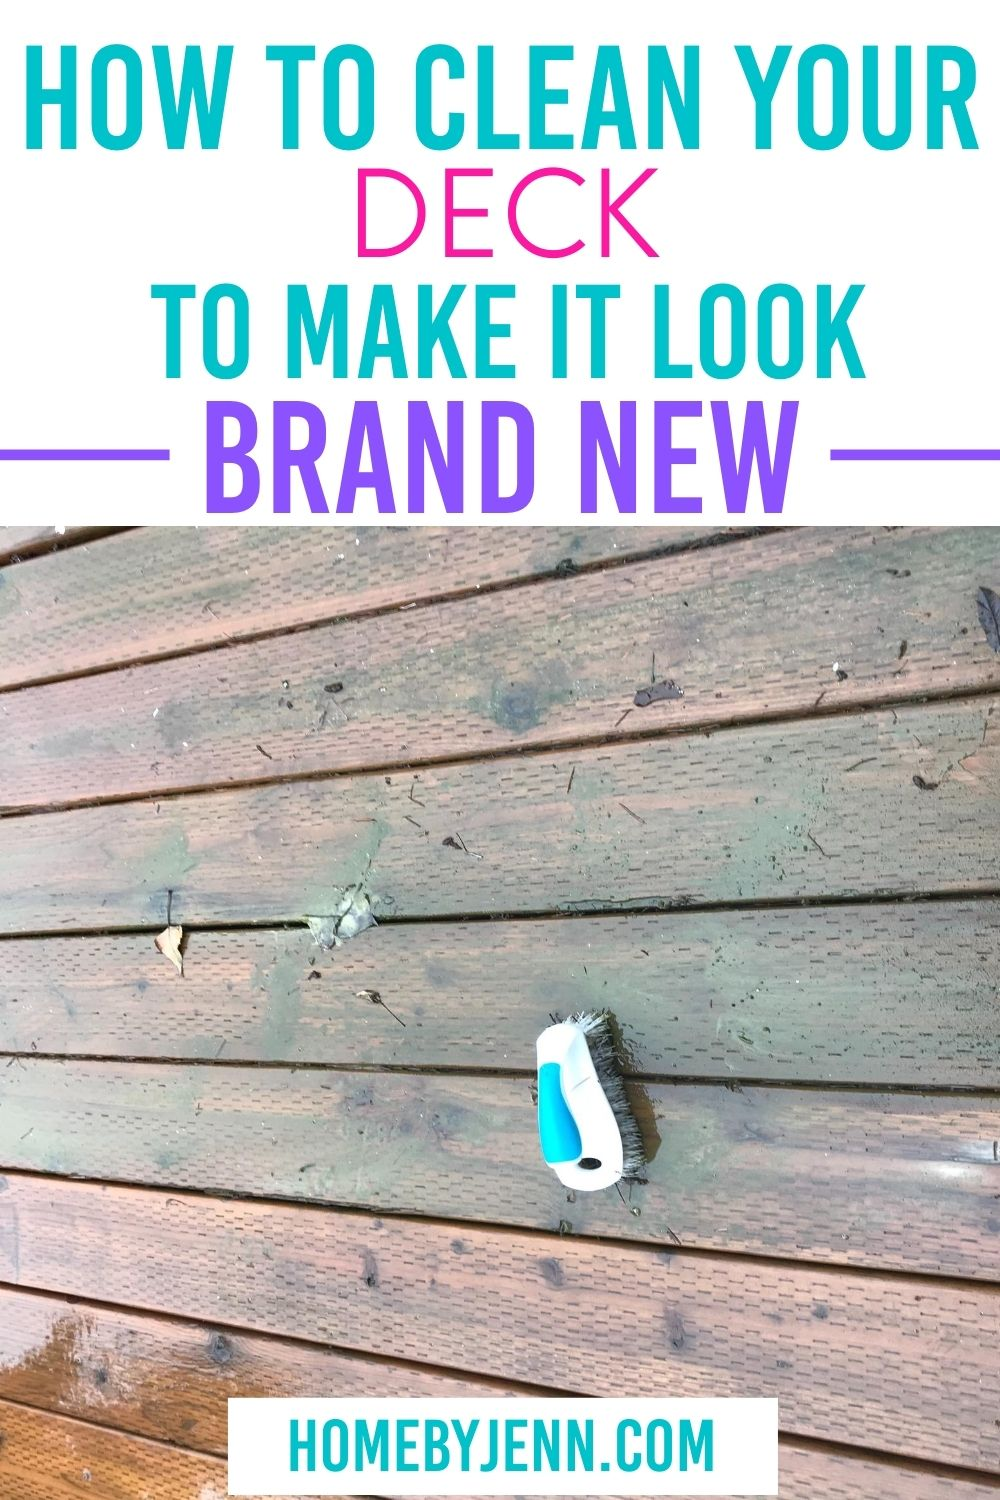 Learn how to clean your deck to help keep it maintained. These cleaning tips will help extend the life of your deck. #cleandeck #howtocleanadeck #cleaningtips #cleaninghacks #homemaintenance via @homebyjenn